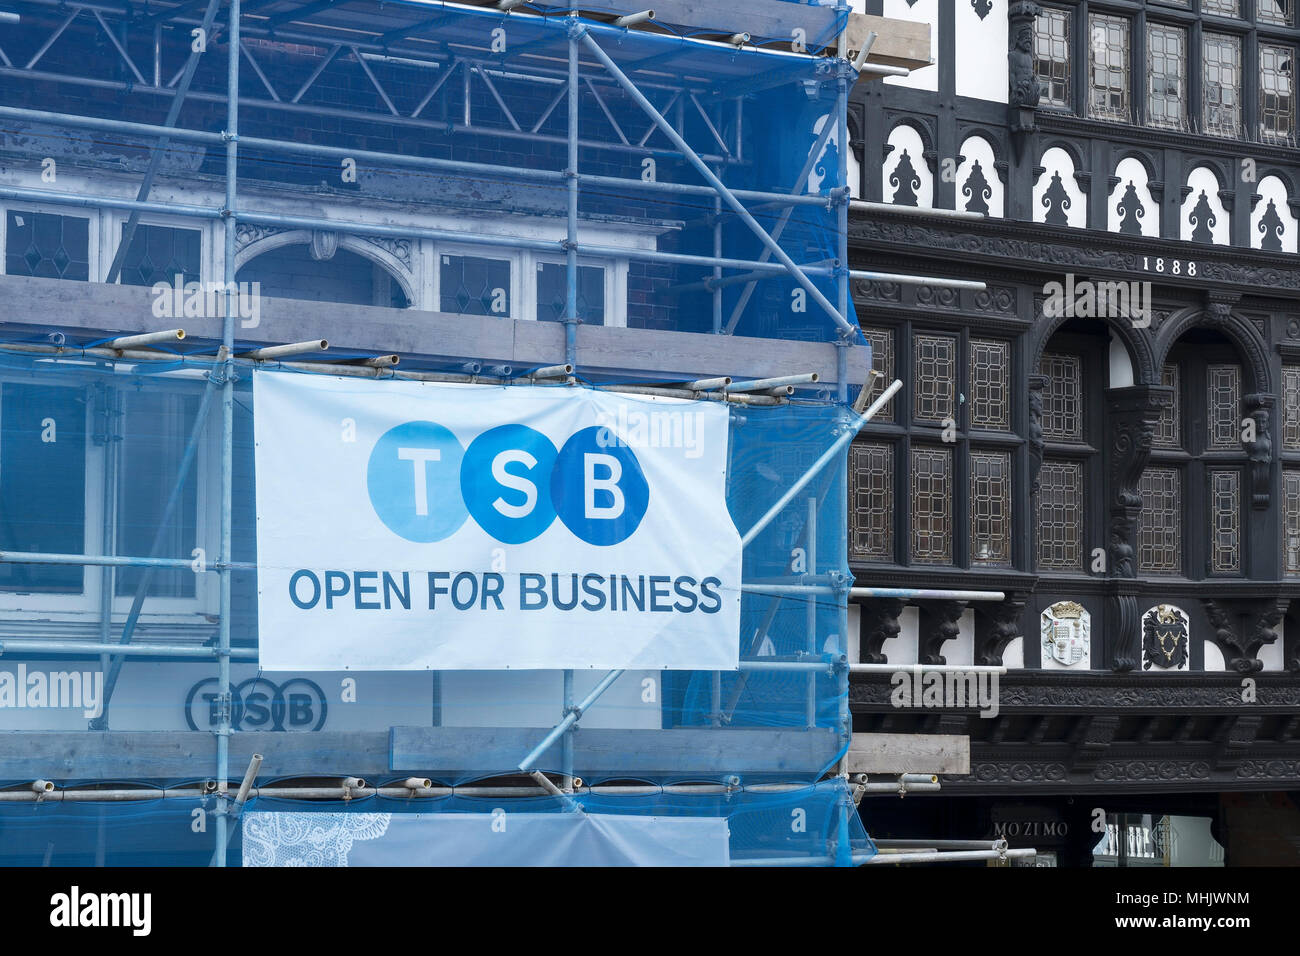 TSB Bank open for business sign on scaffolding - Stock Image